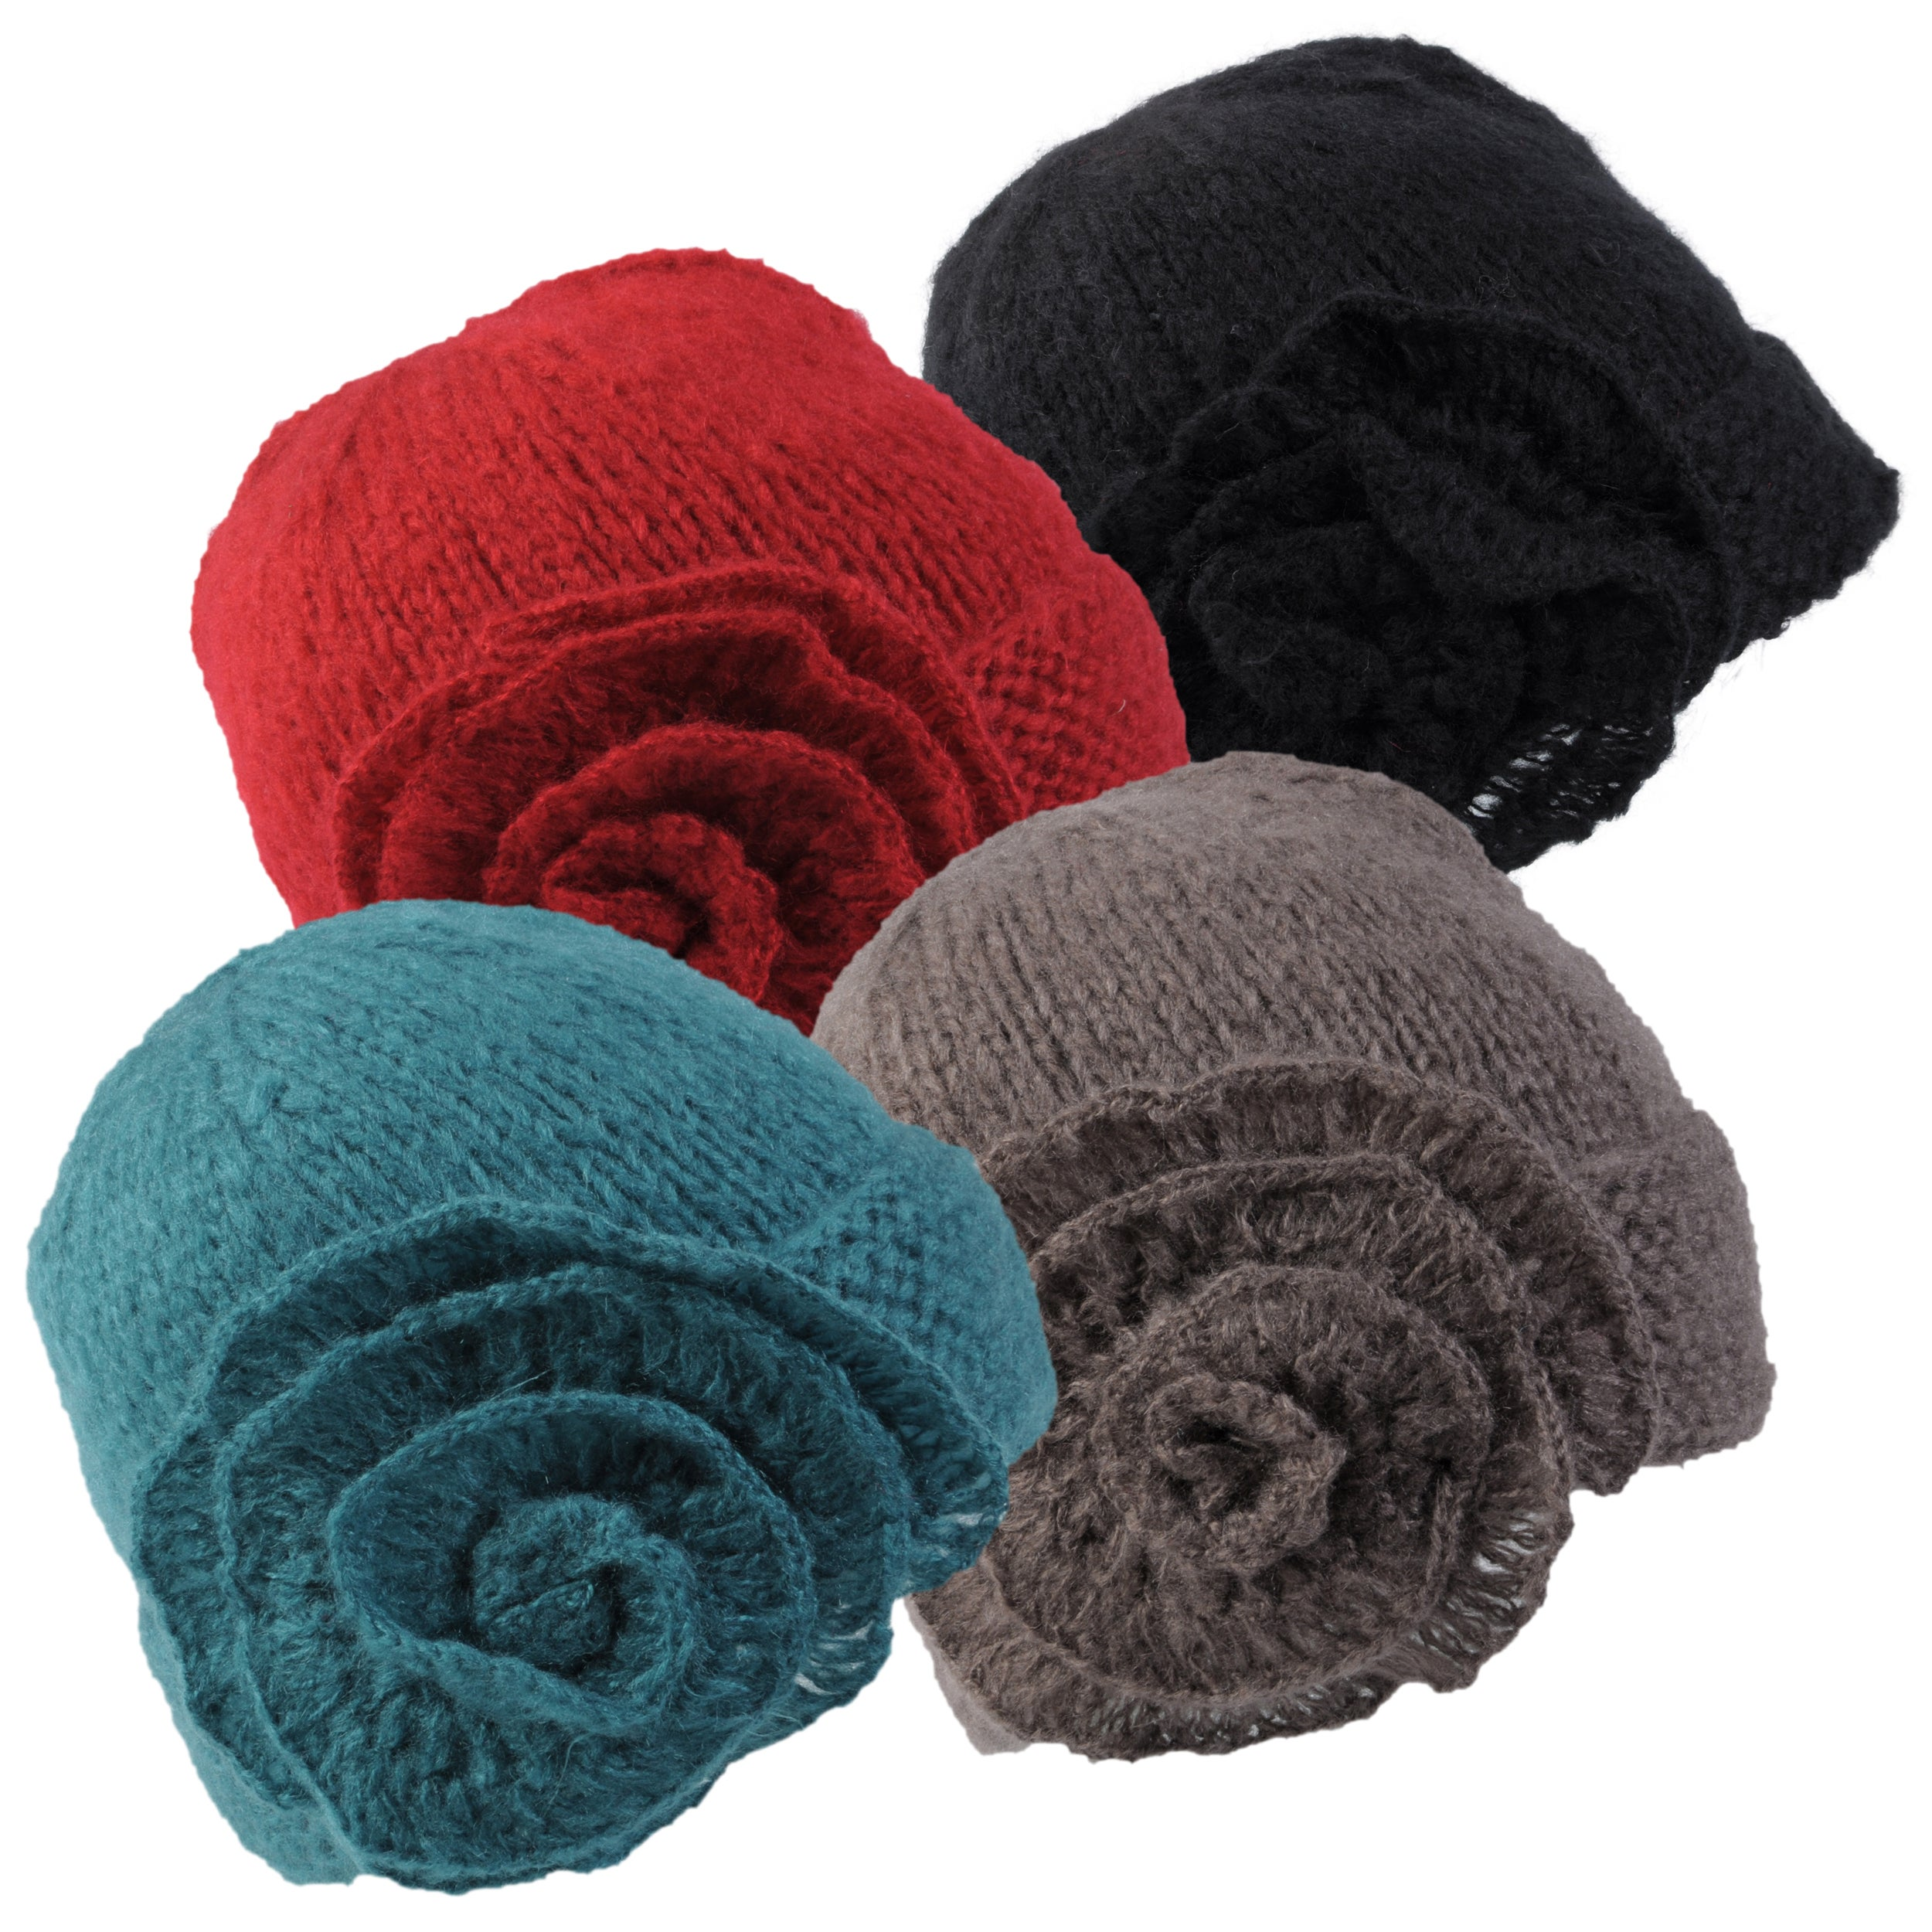 Journee Collection Women's Rosette Accent Knit Beanie